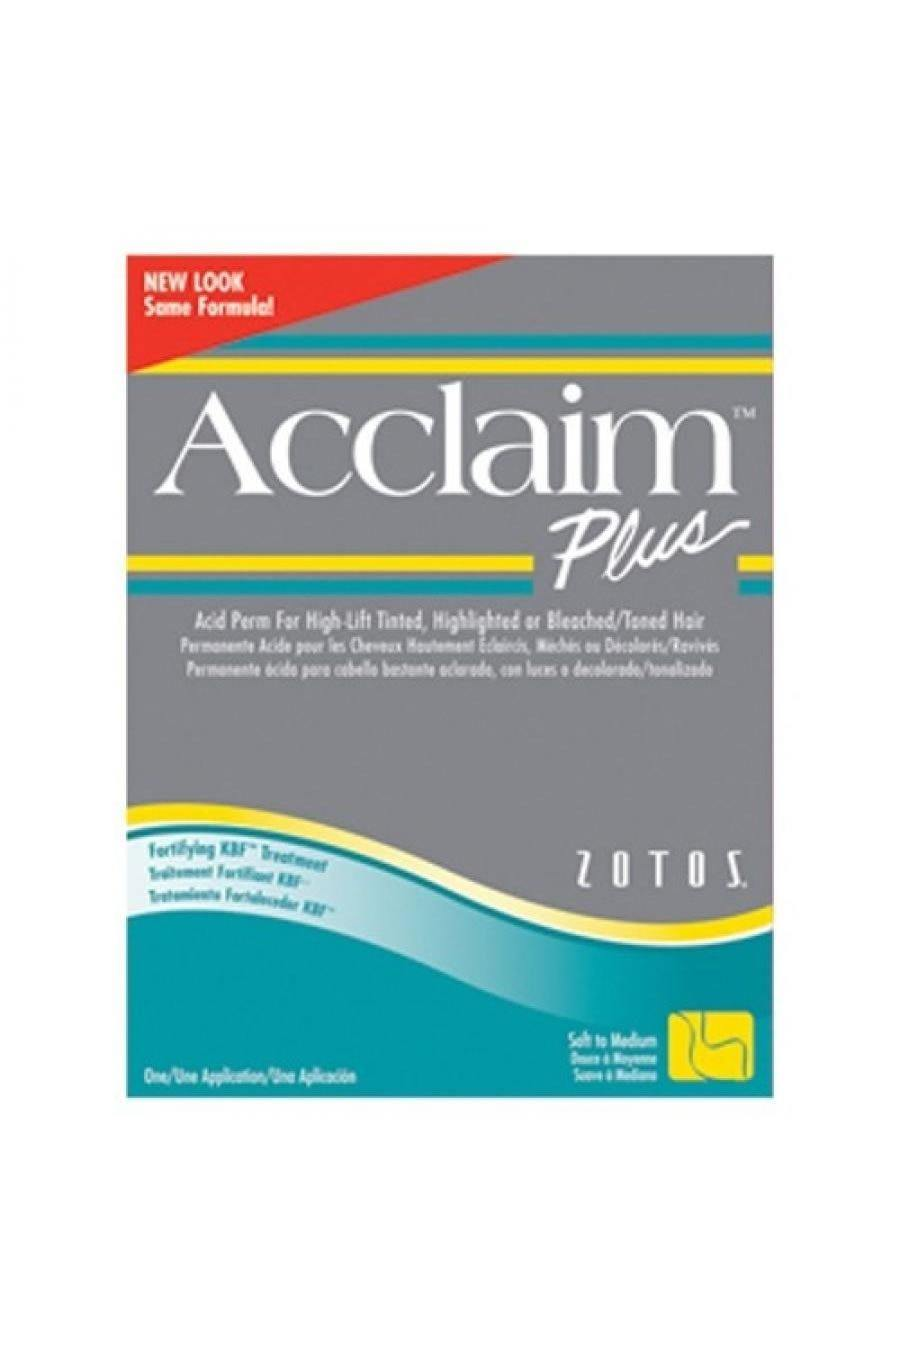 Acclaim Plus Hi Lift Perm - Norris Hair & Beauty